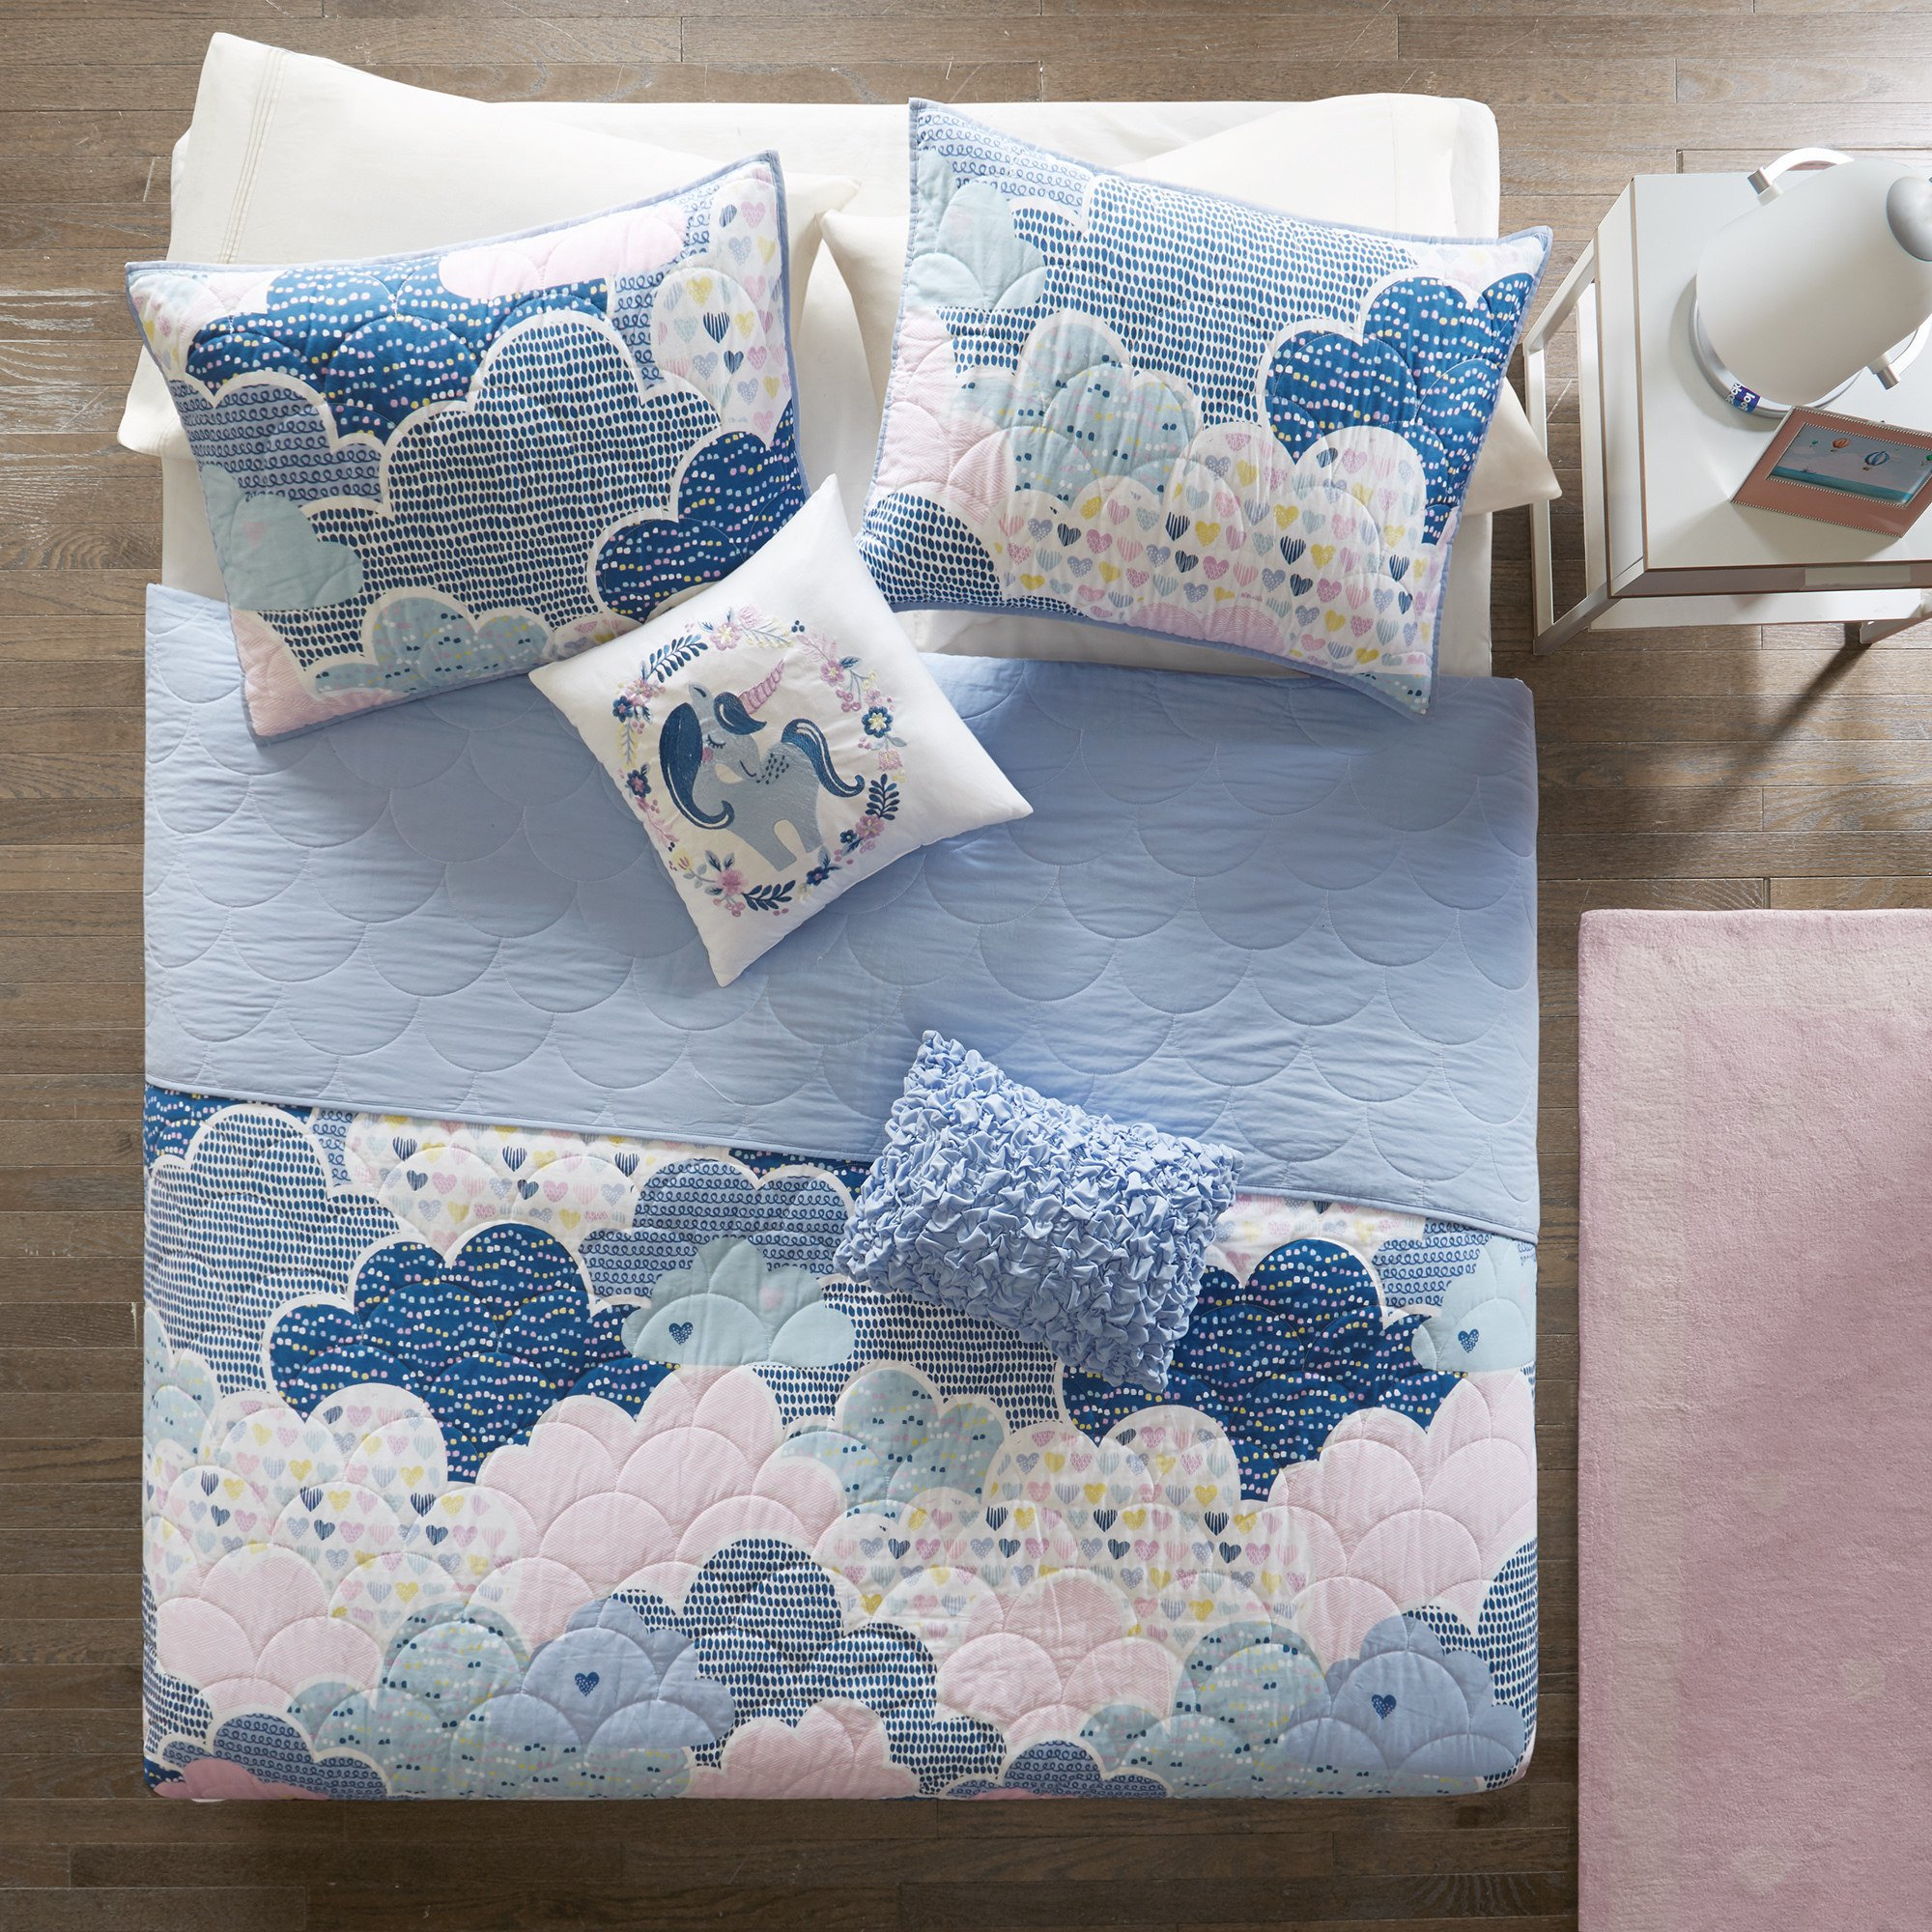 5 Piece Girls Blue Pink Purple White Color Cloud Themed Coverlet Full Queen Set, Sky Clouds Bedding, Playful Fun Polka Dot Heart Love Swirl Dots Pattern, Cotton